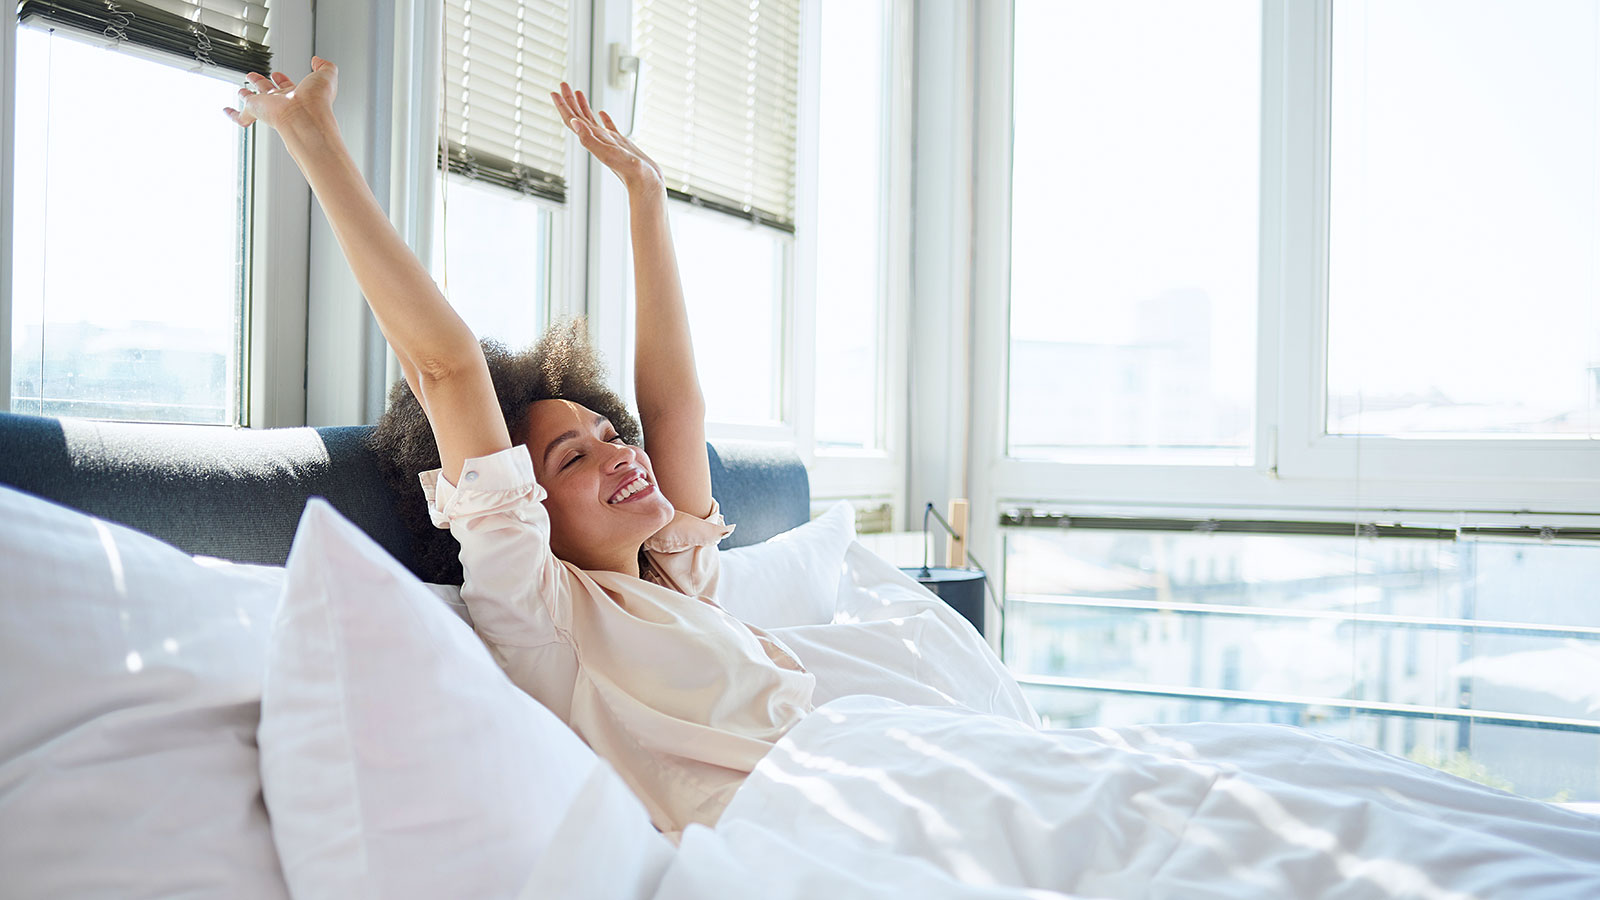 Night owls, become a morning person in 3 weeks – just follow these steps